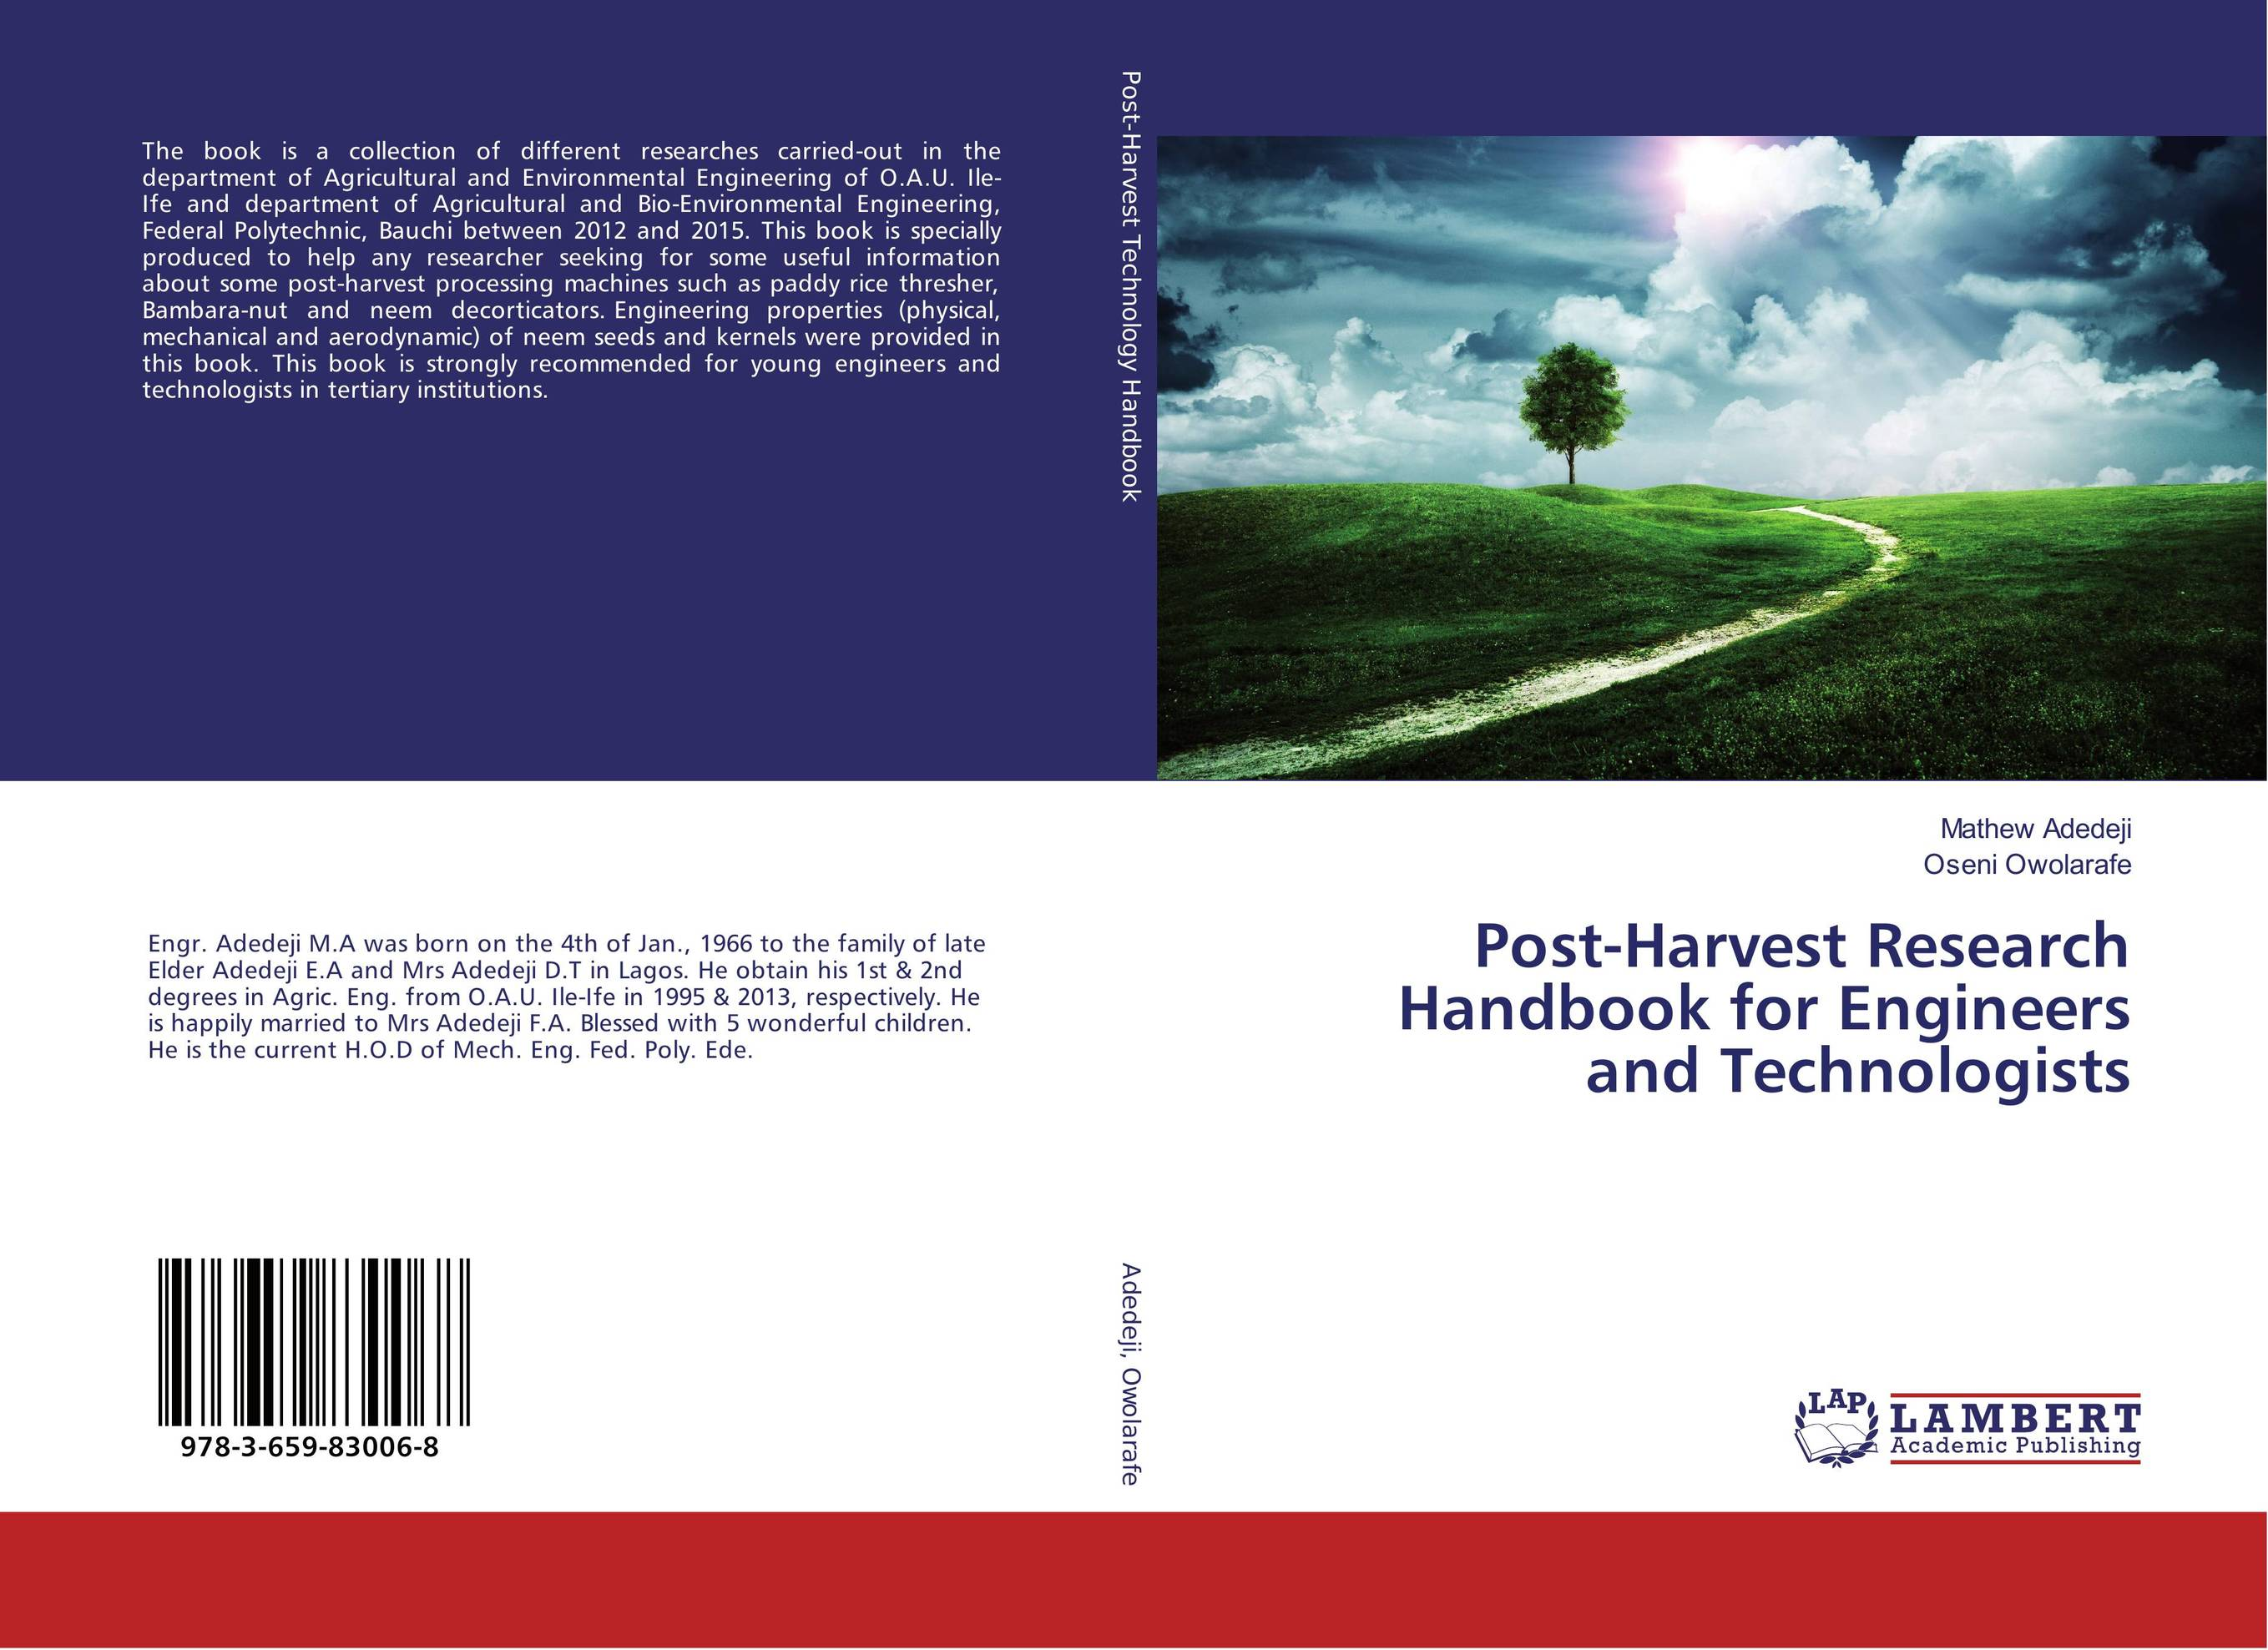 Post-Harvest Research Handbook for Engineers and Technologists handbook of the exhibition of napier relics and of books instruments and devices for facilitating calculation